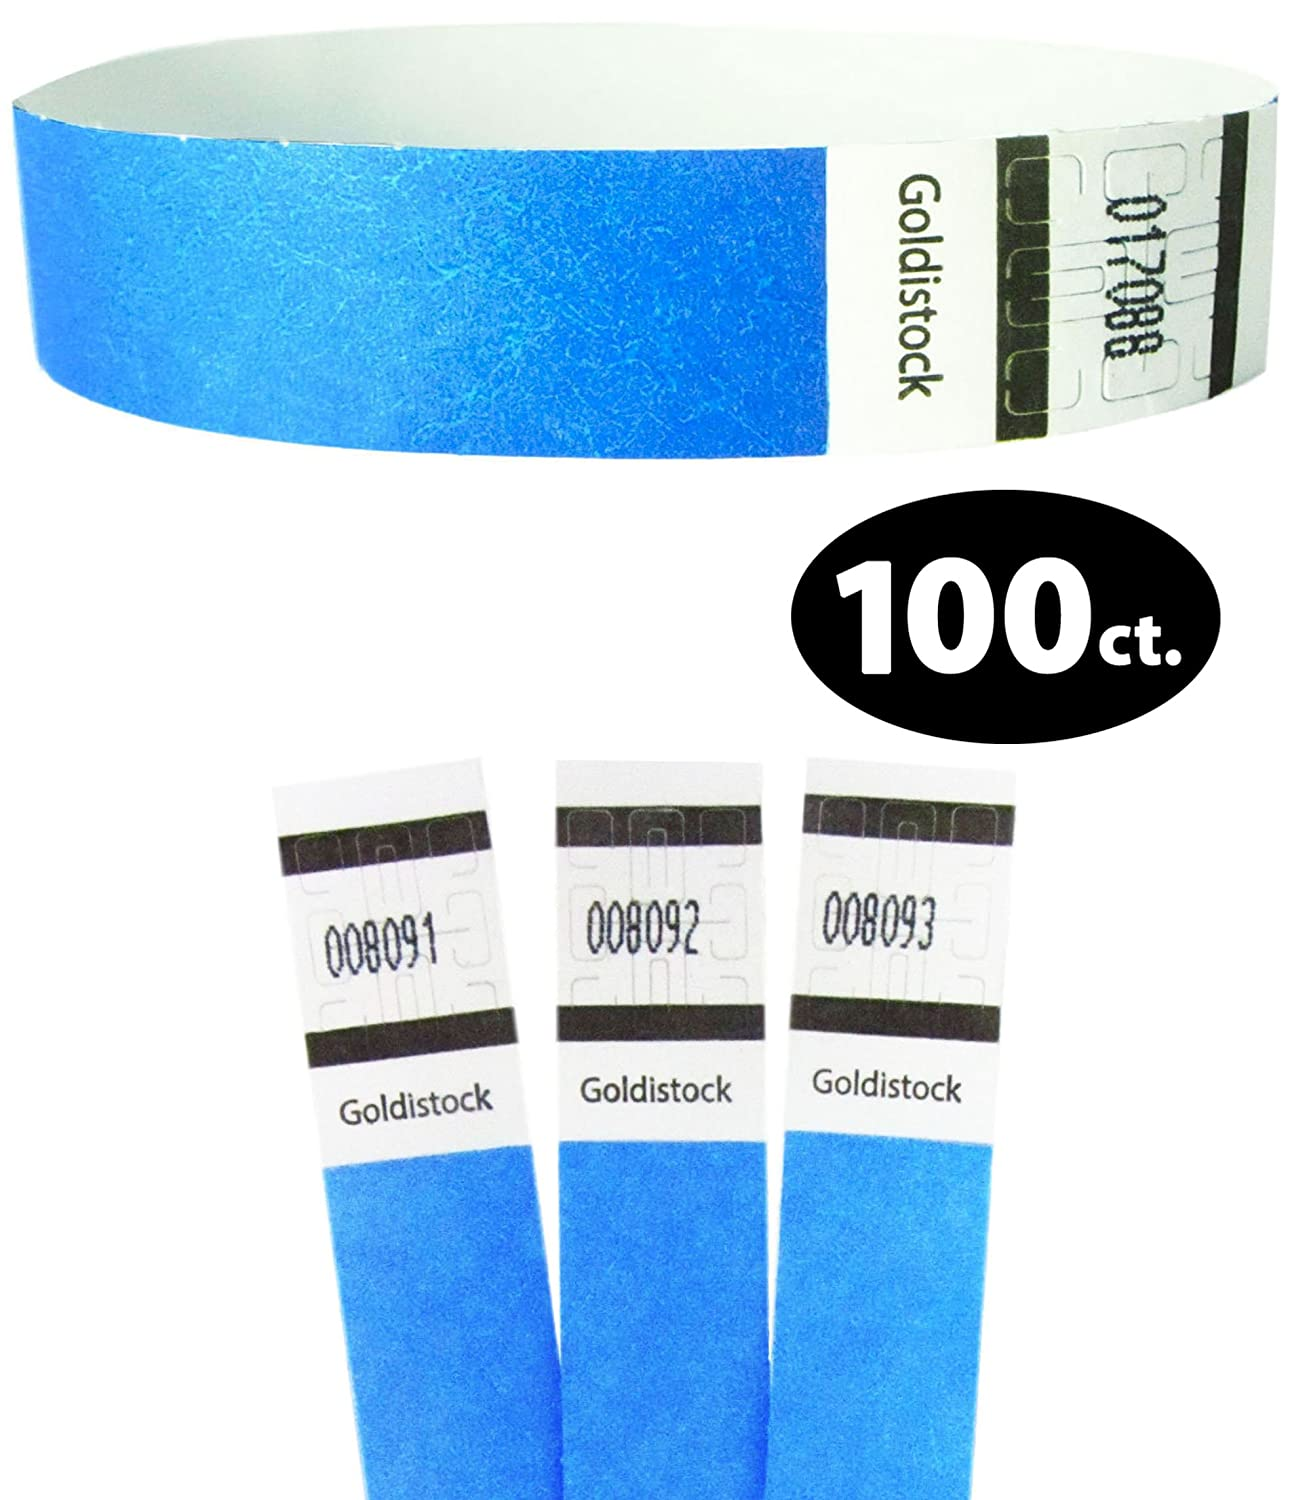 Goldistock 3/4 Tyvek Wristbands Top Ten Variety Pack 100 Ct. (10 Each): Neon :Green, Blue, Red, Yellow, Orange, Pink, Purple, Metallic Gold, Black, White - Event ID Bands (Paper - Like Texture)